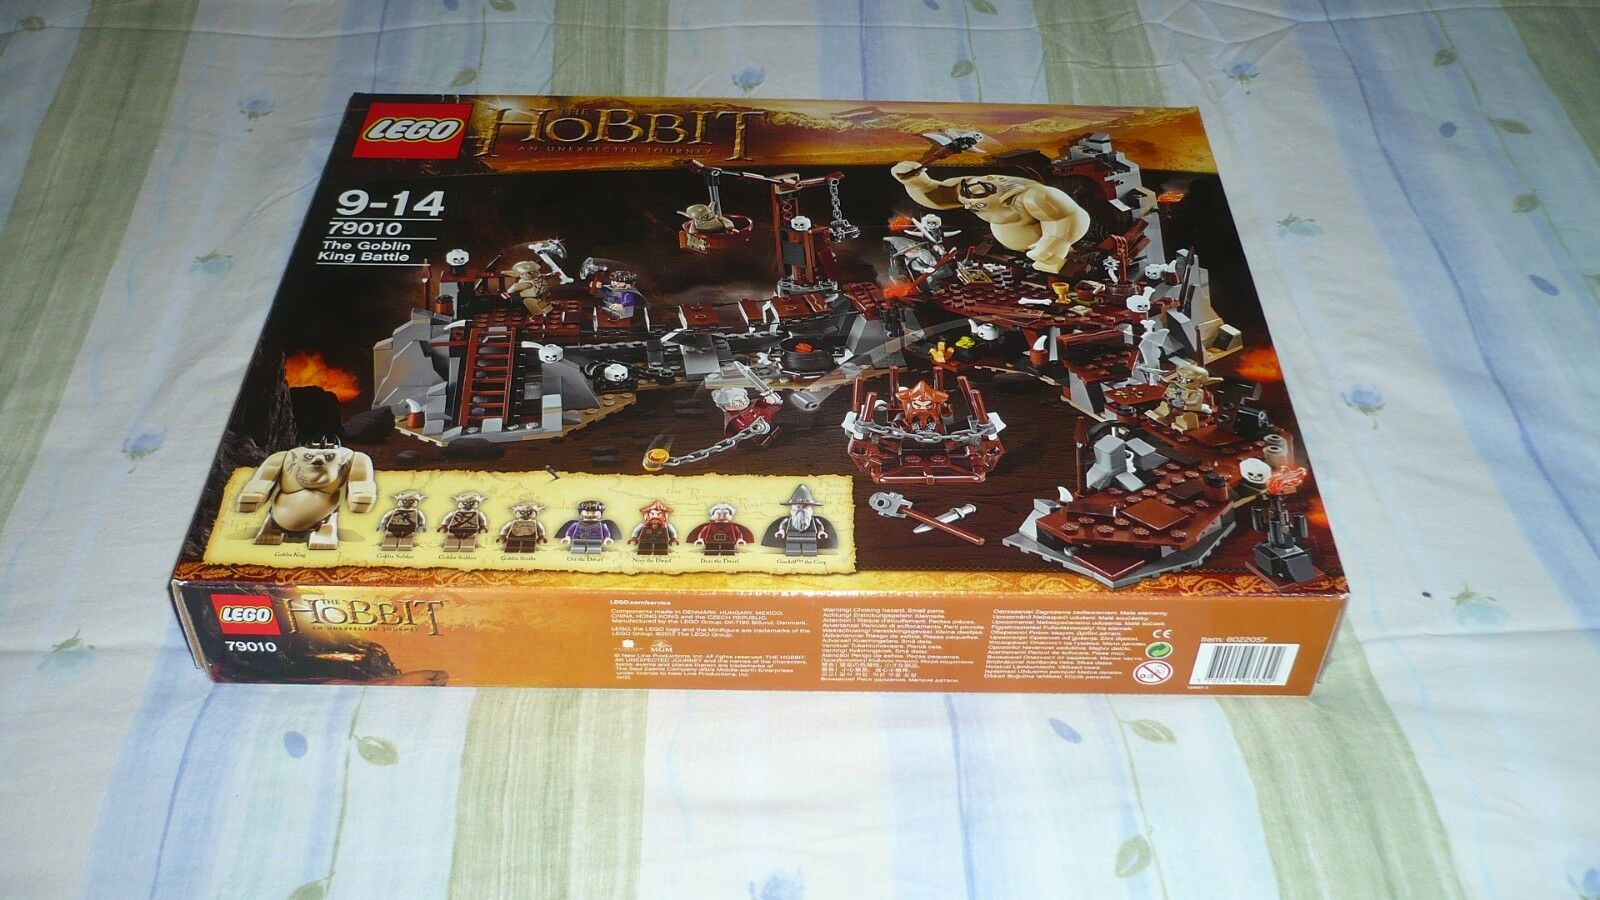 Lego LE HOBBIT 79010 THE GOBLIN KING BATTLE  neuf  SCELLé